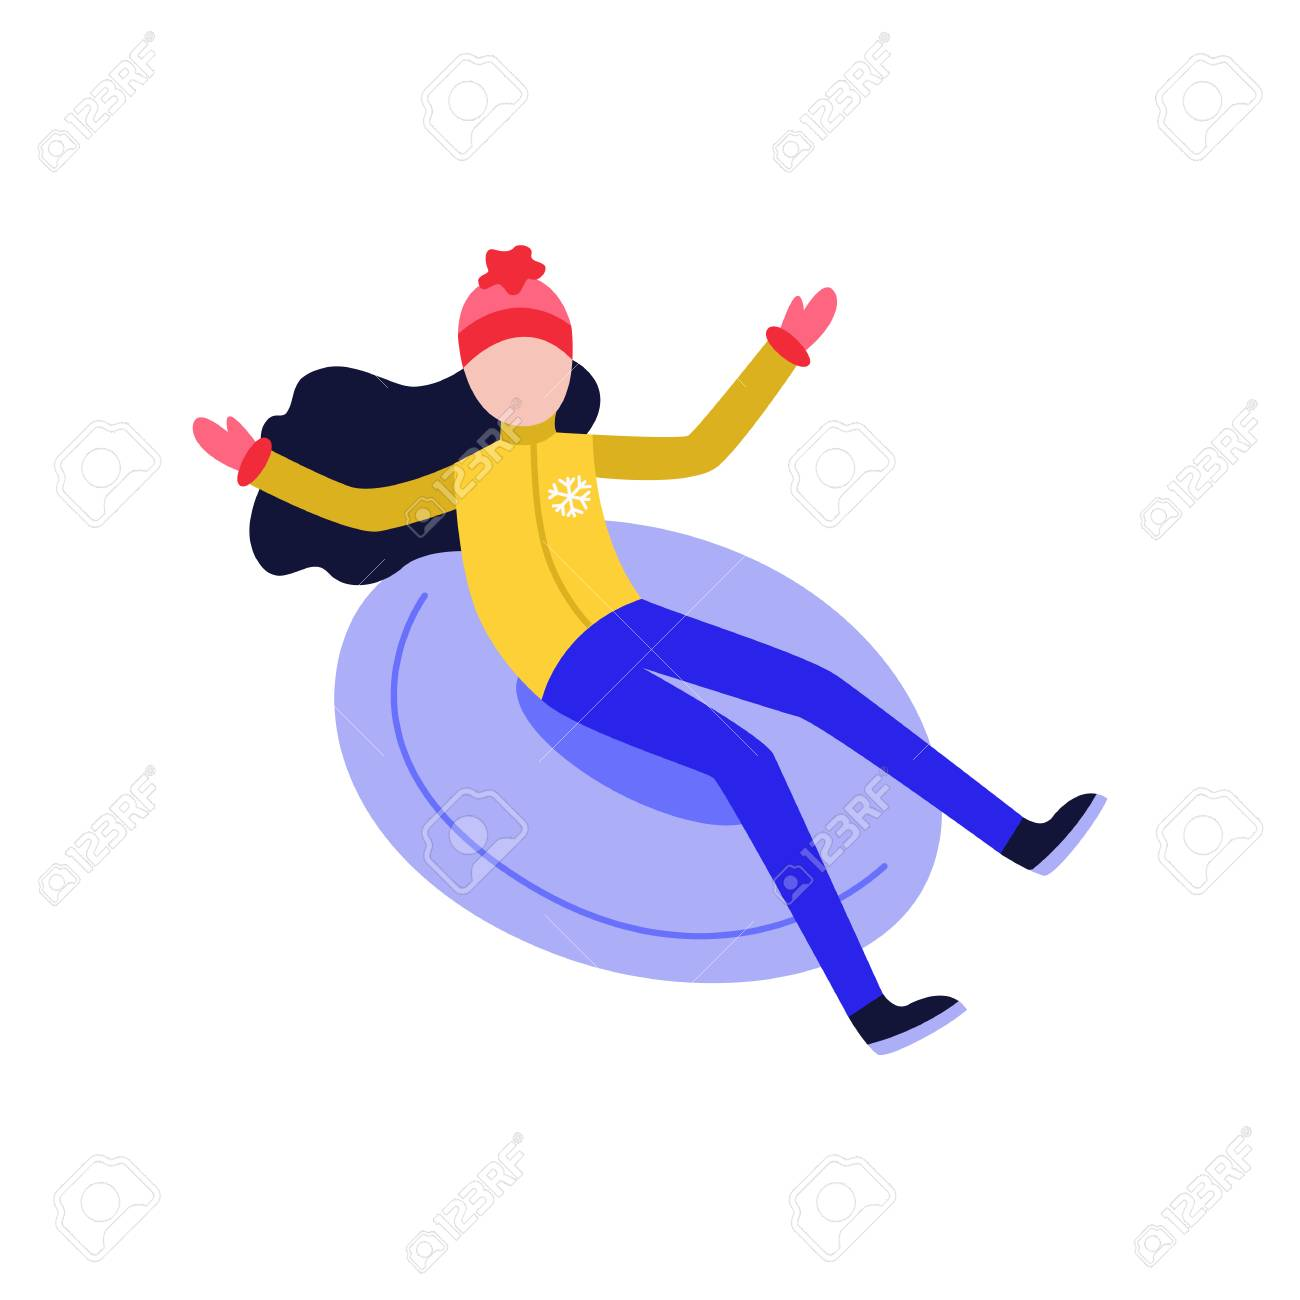 Flat girl in hat sledging at inflatable tube, snowtubing outdoors in winter in warm clothing and long black hairs. Female character, woman and leisure activity. Vector illustration. - 114776397